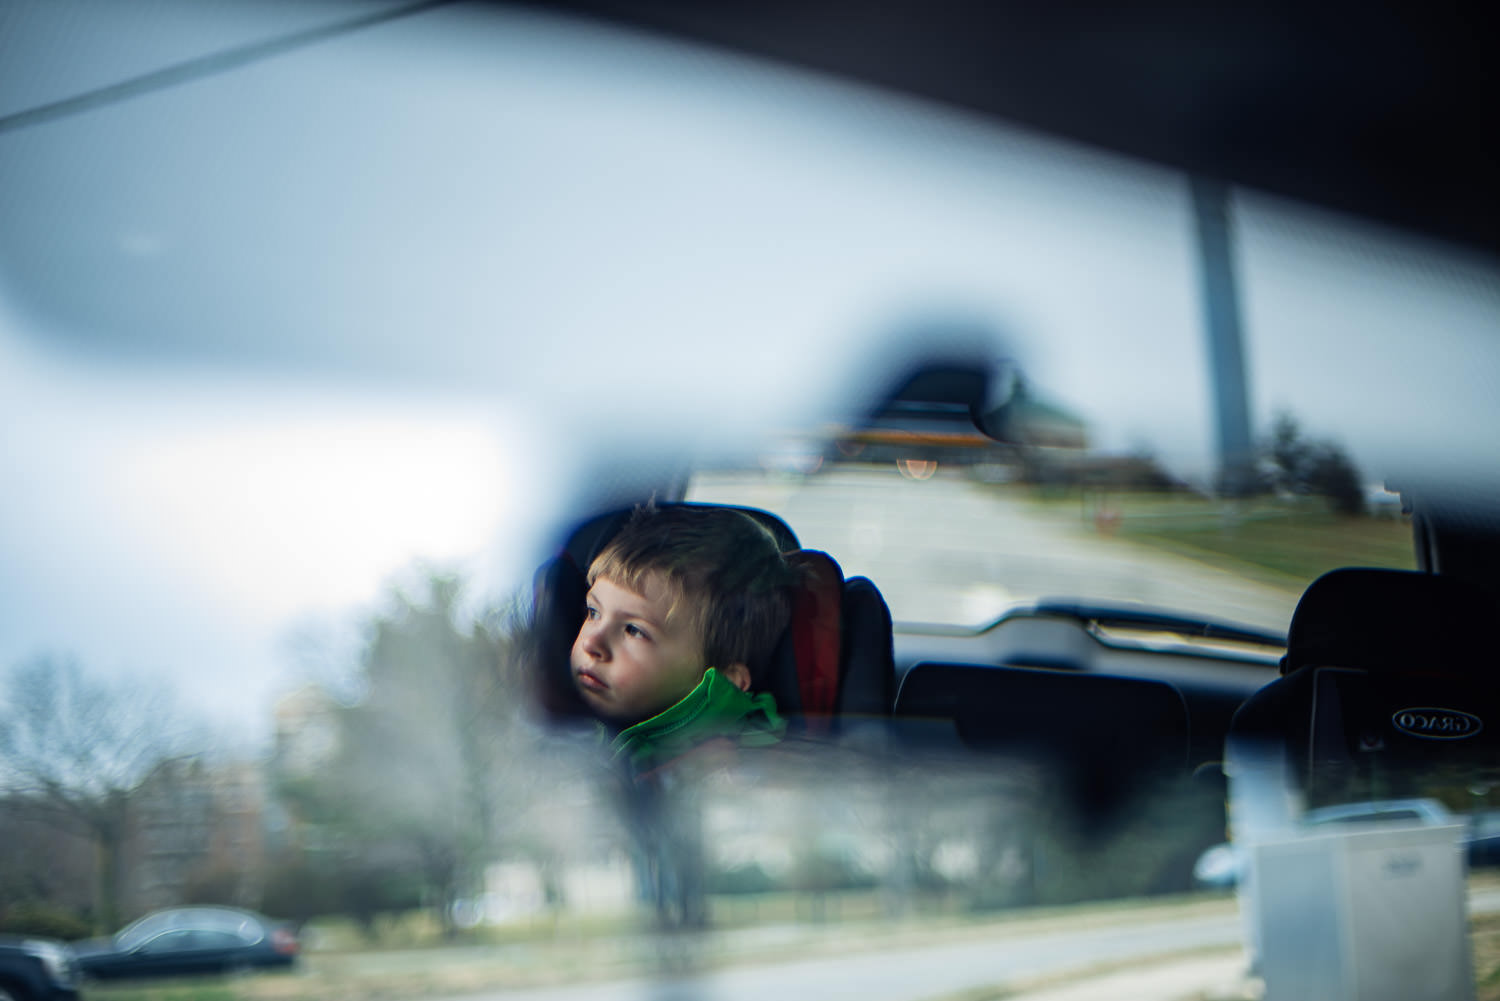 A reflection of a little boy in a rearview mirror.